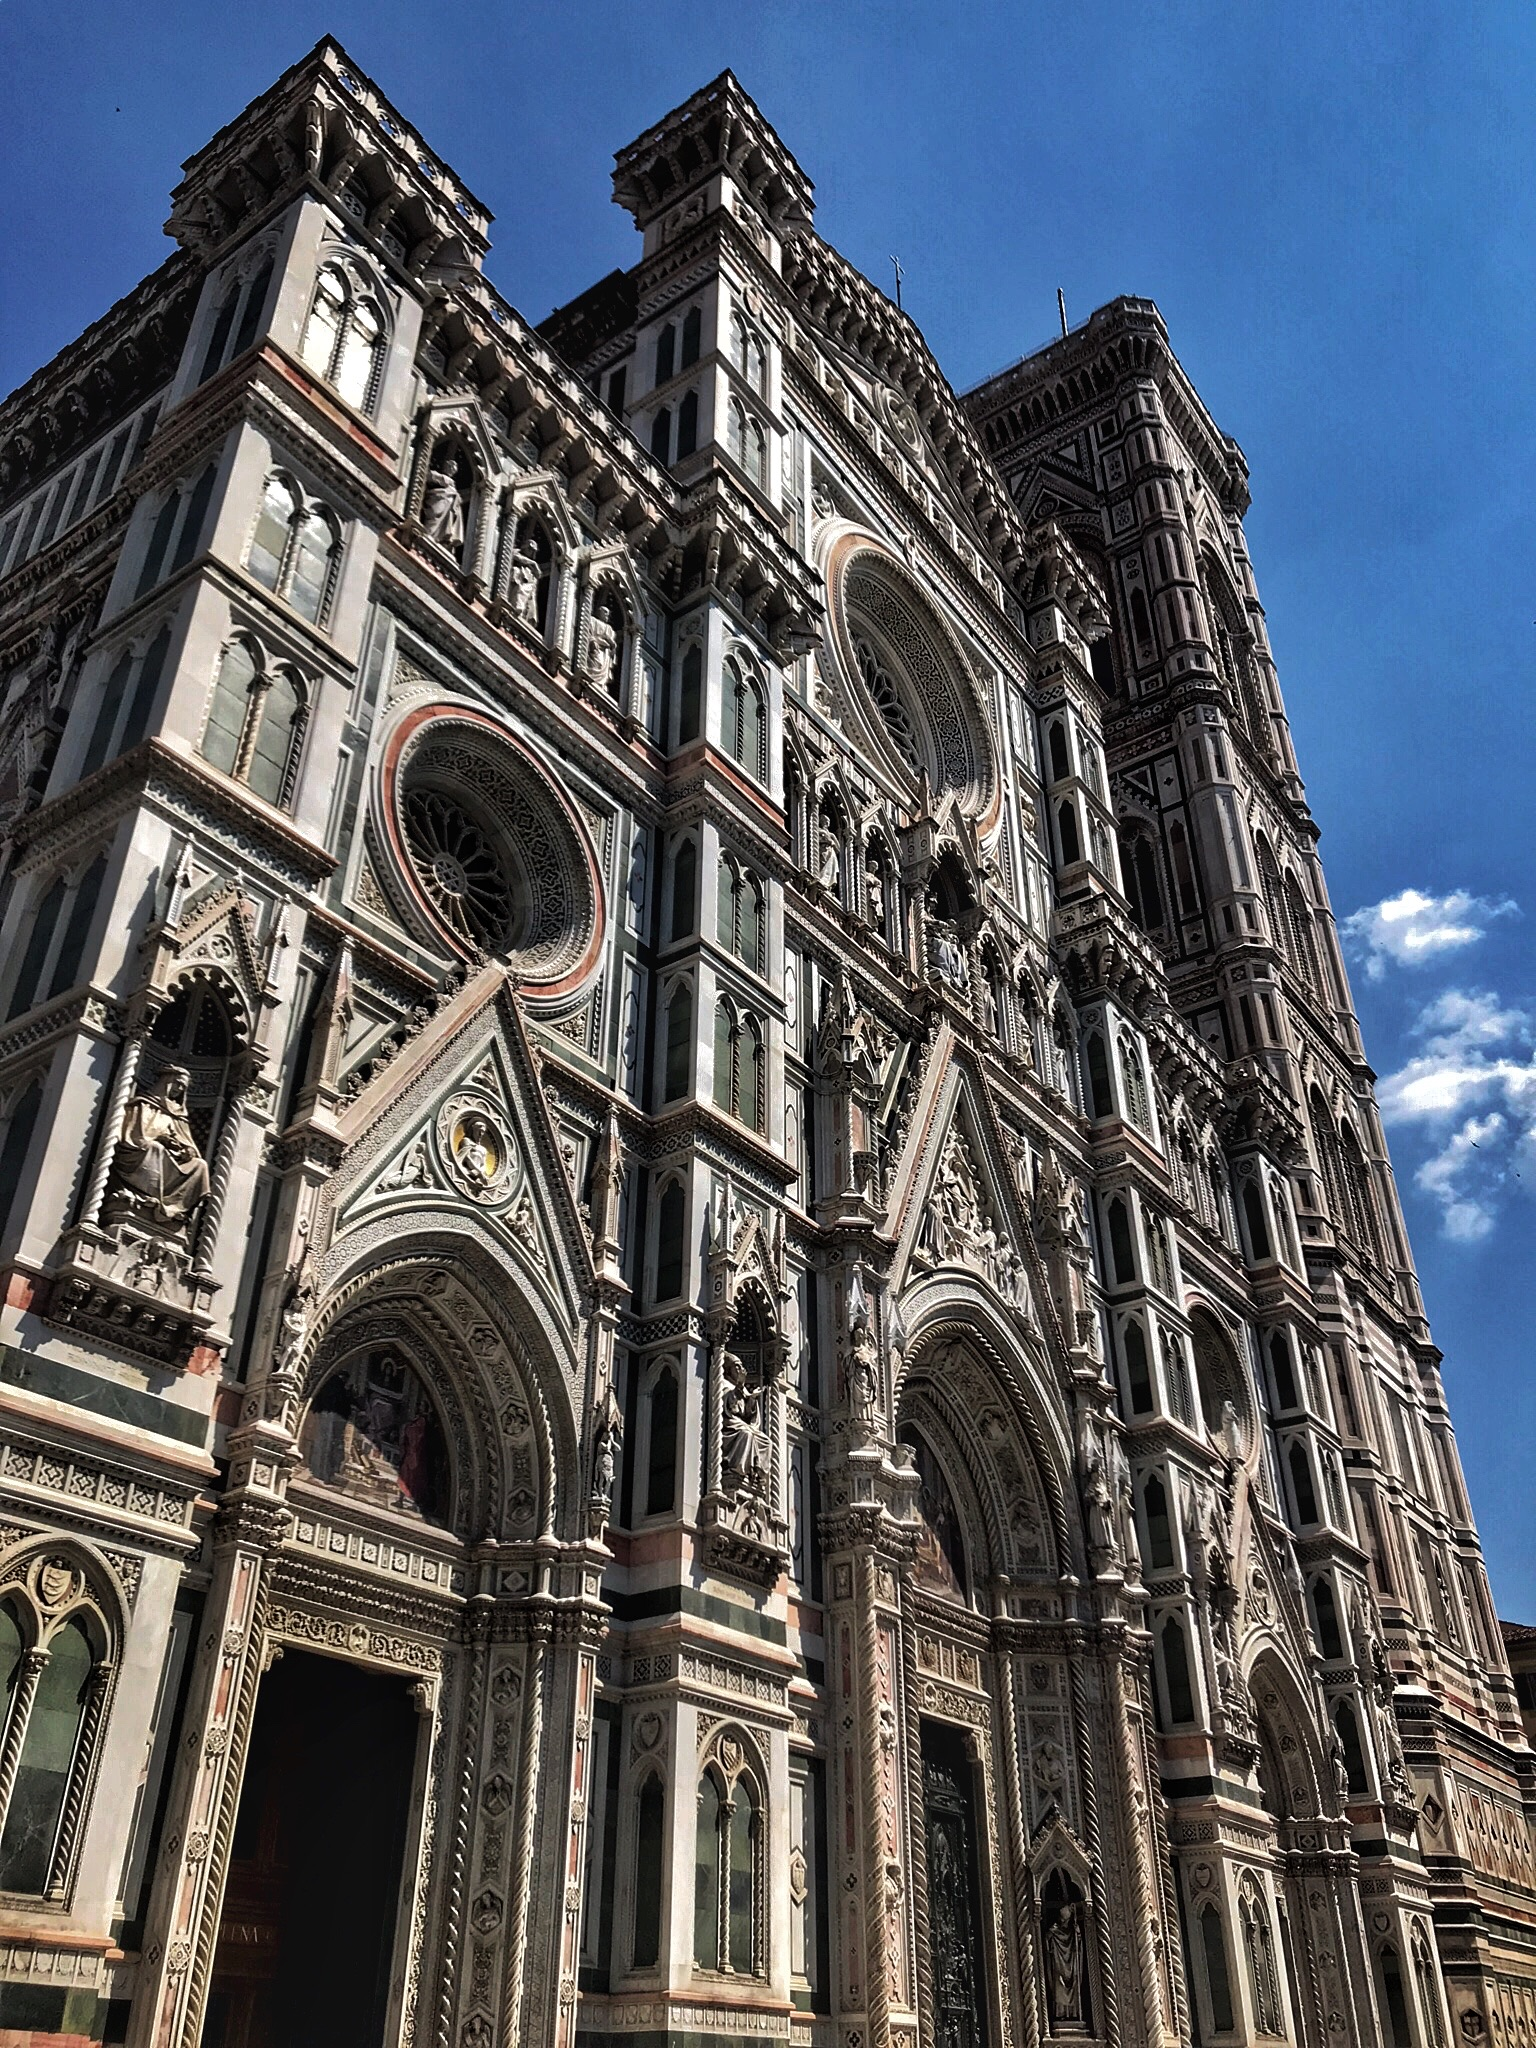 The Cattedrale di Santa Maria del Fiore was impossible to get in, but amazing to see from outside.